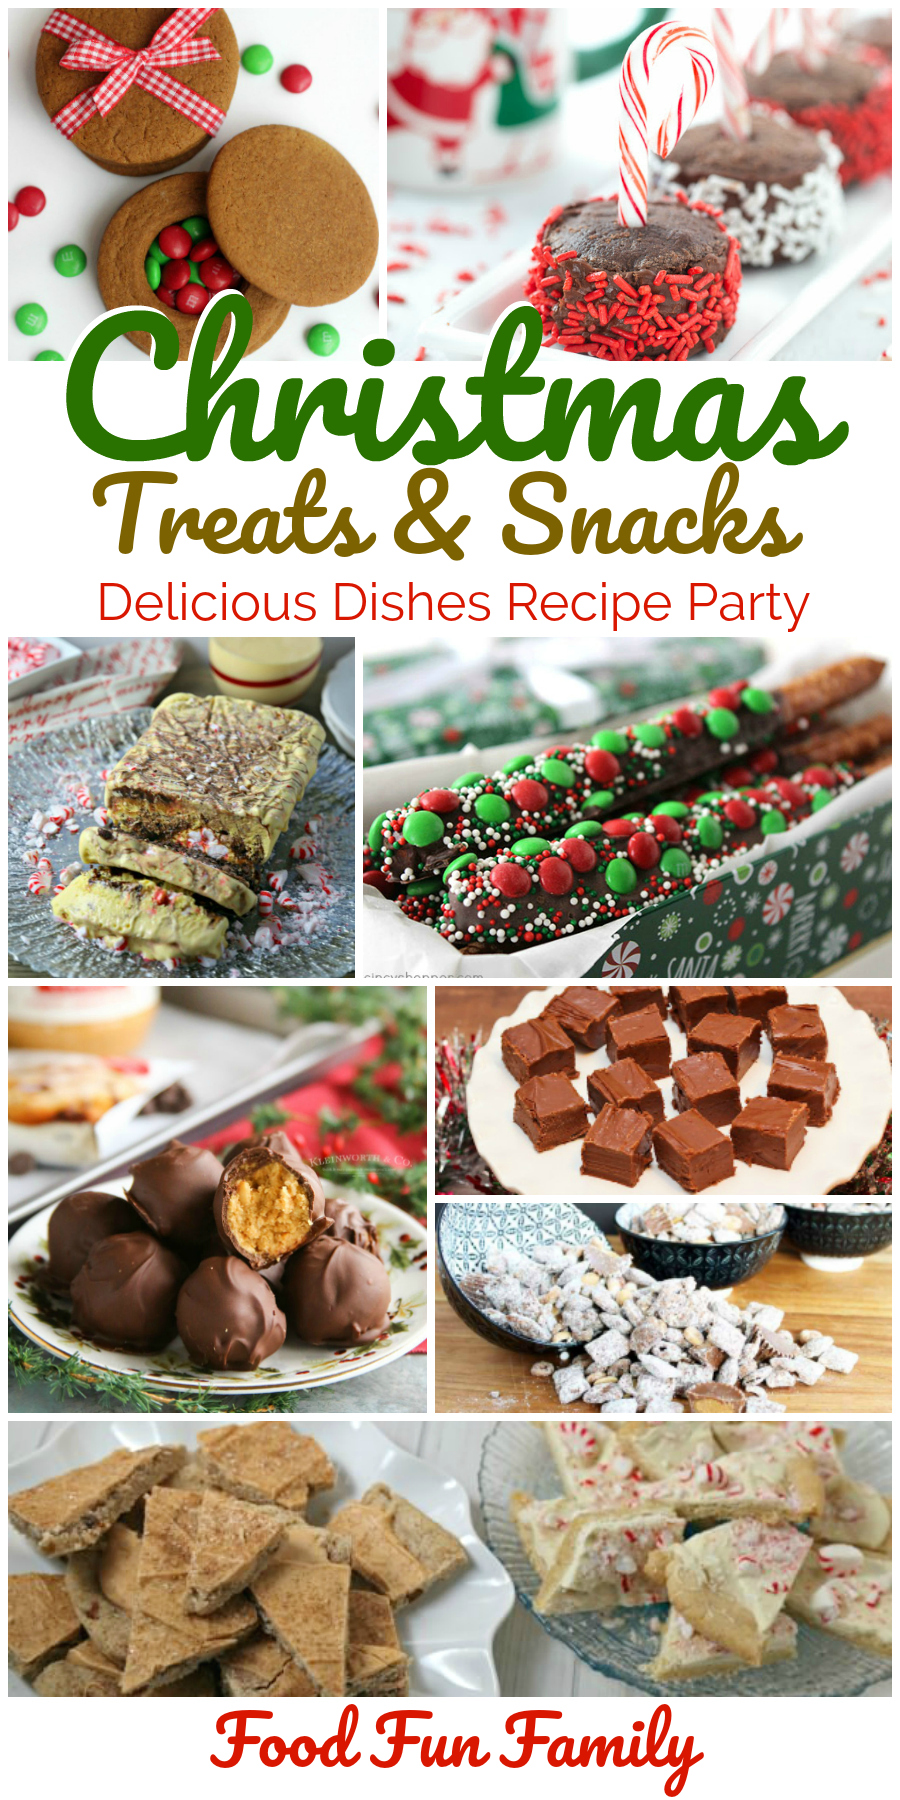 Christmas treats and snacks - a Delicious Dishes Recipe Party collection!